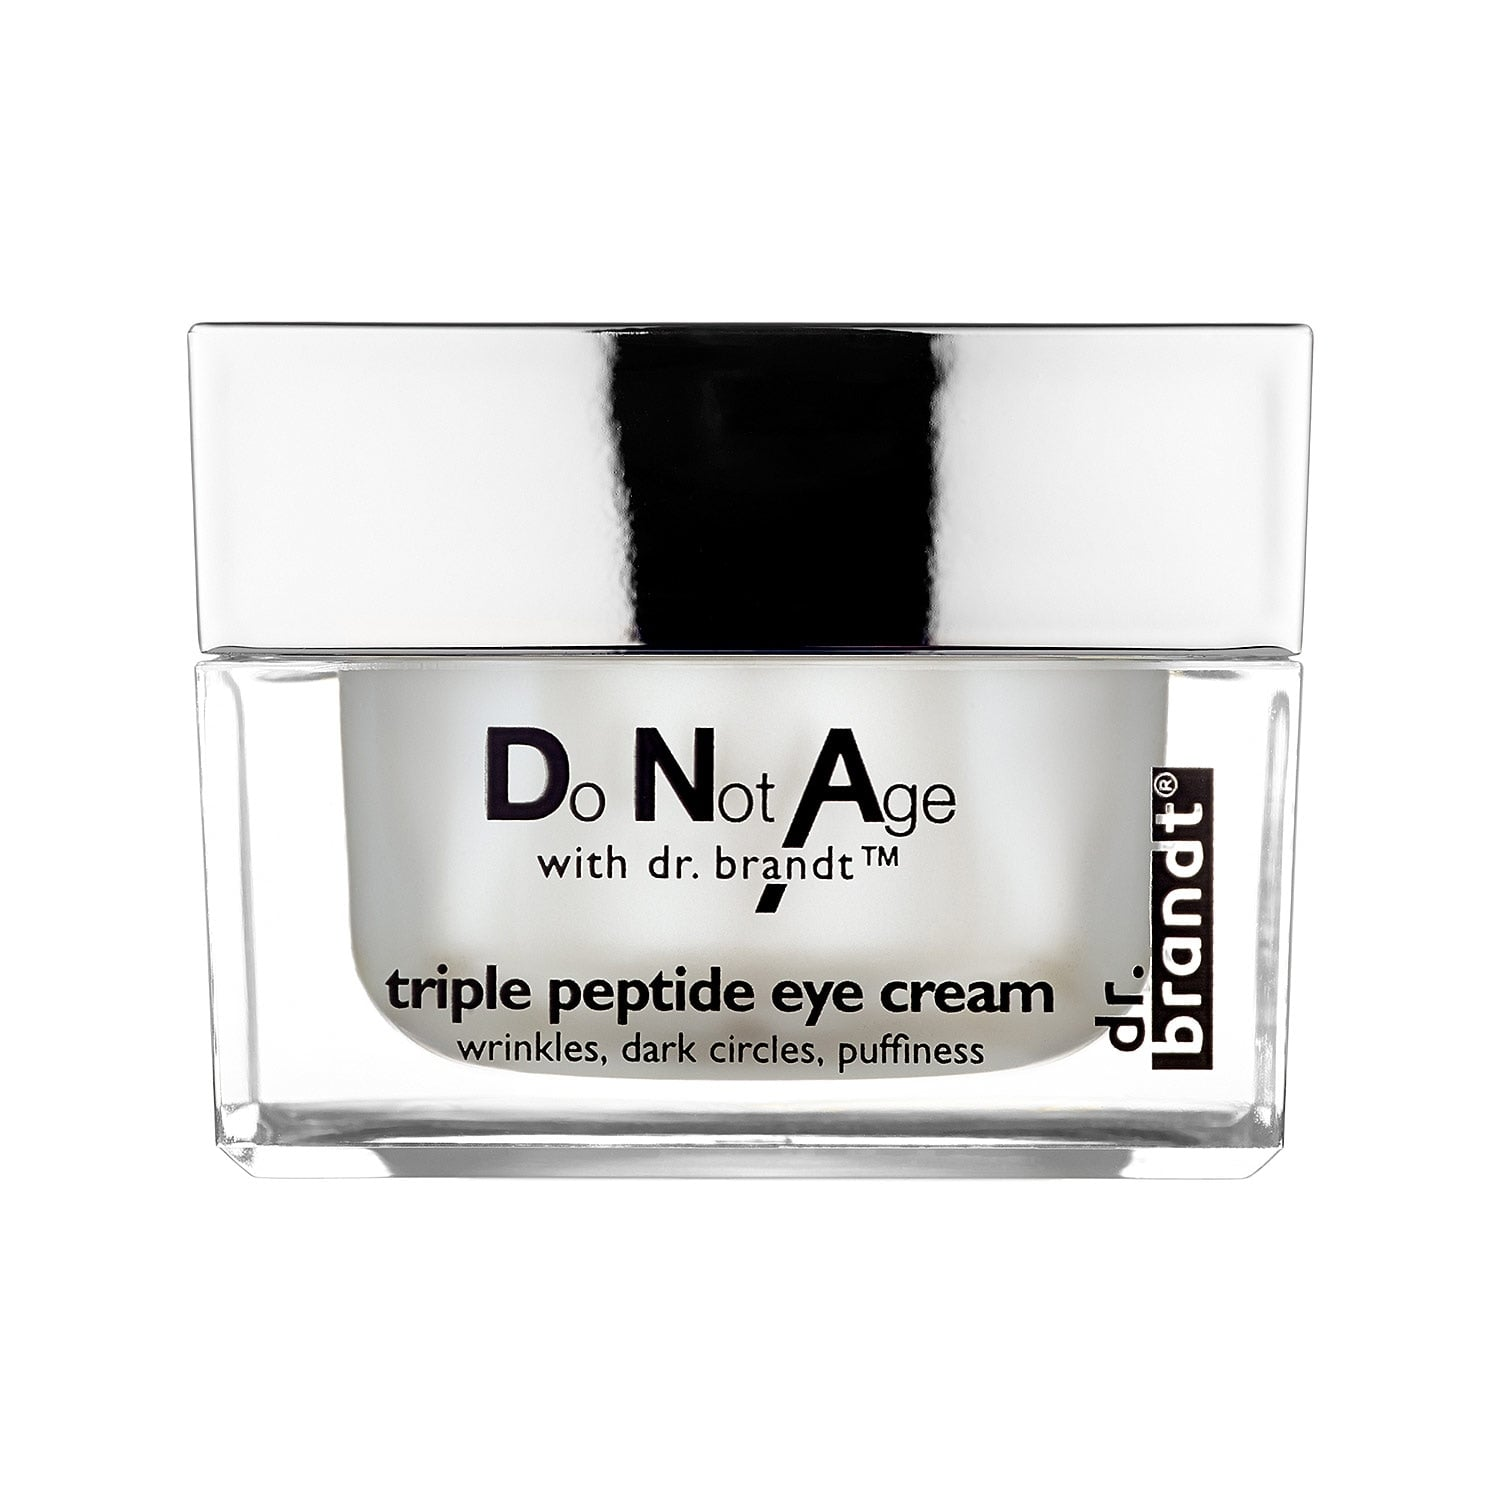 Dr Brandt Skincare Do Not Age With Dr Brandt Triple Peptide Eye Cream Here Are Sephora S Very Best Vitamin C Eye Creams To Tackle Dark Circles And Puffiness